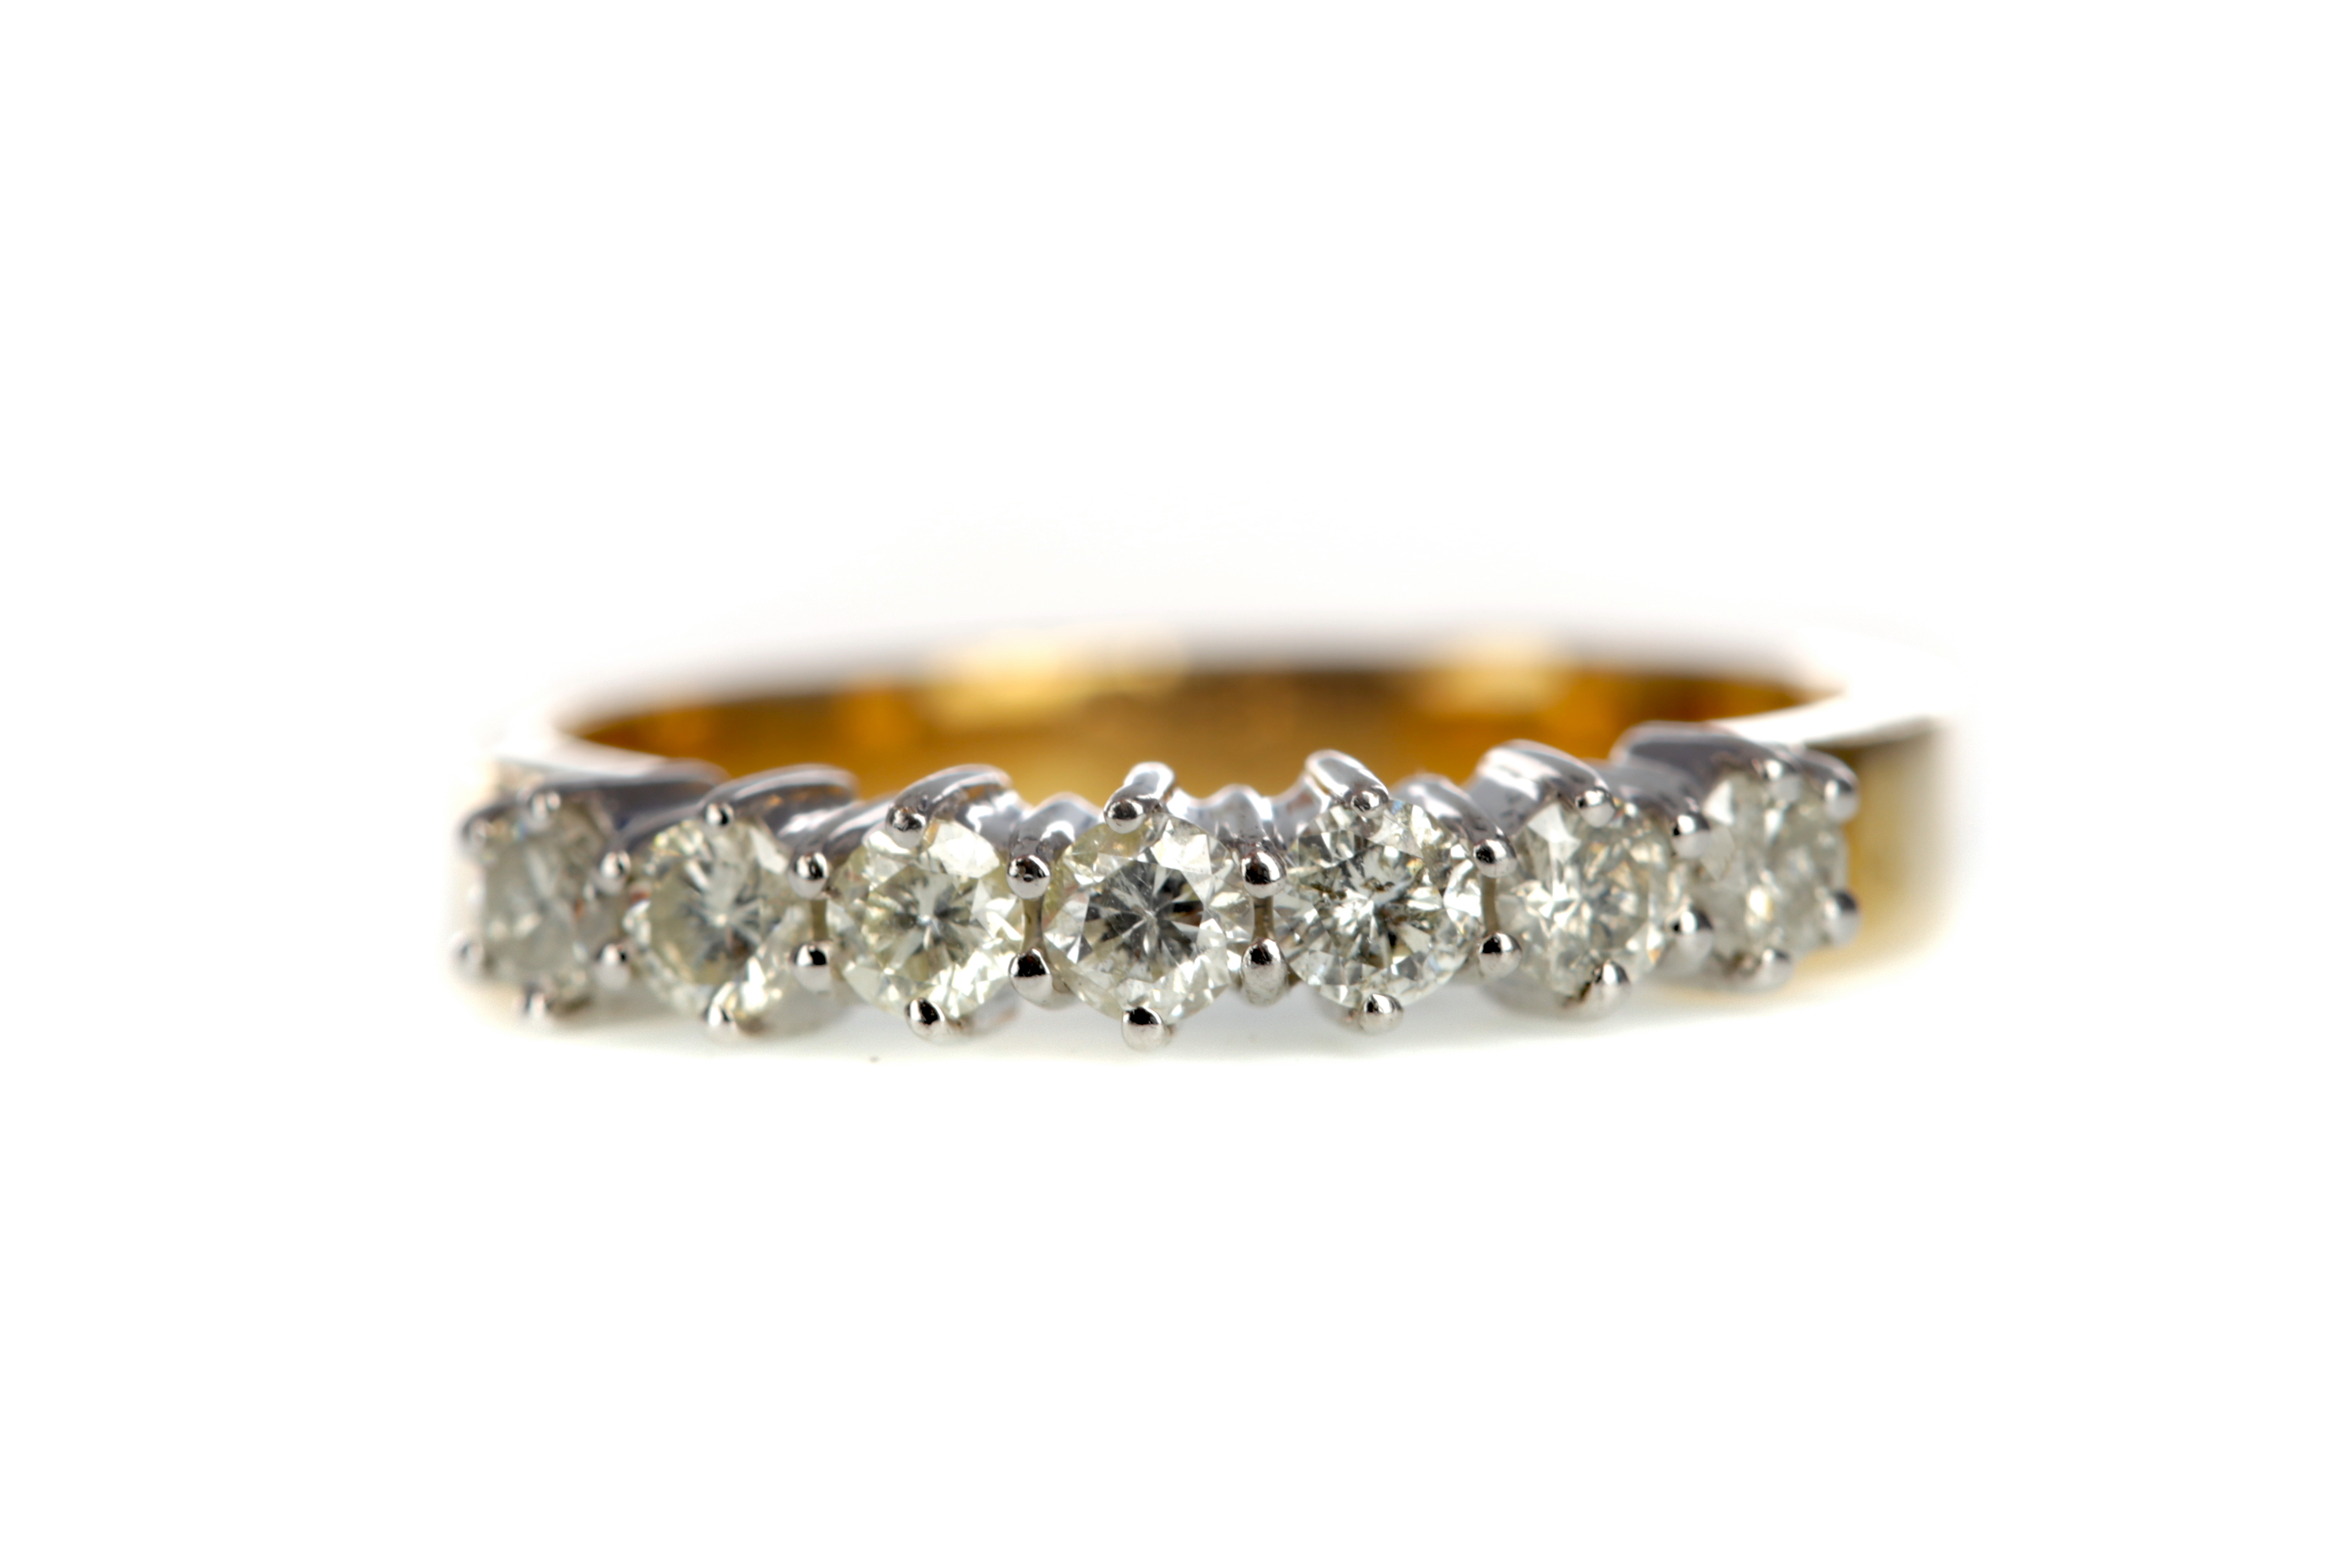 A CERTIFICATED DIAMOND SEVEN STONE RING